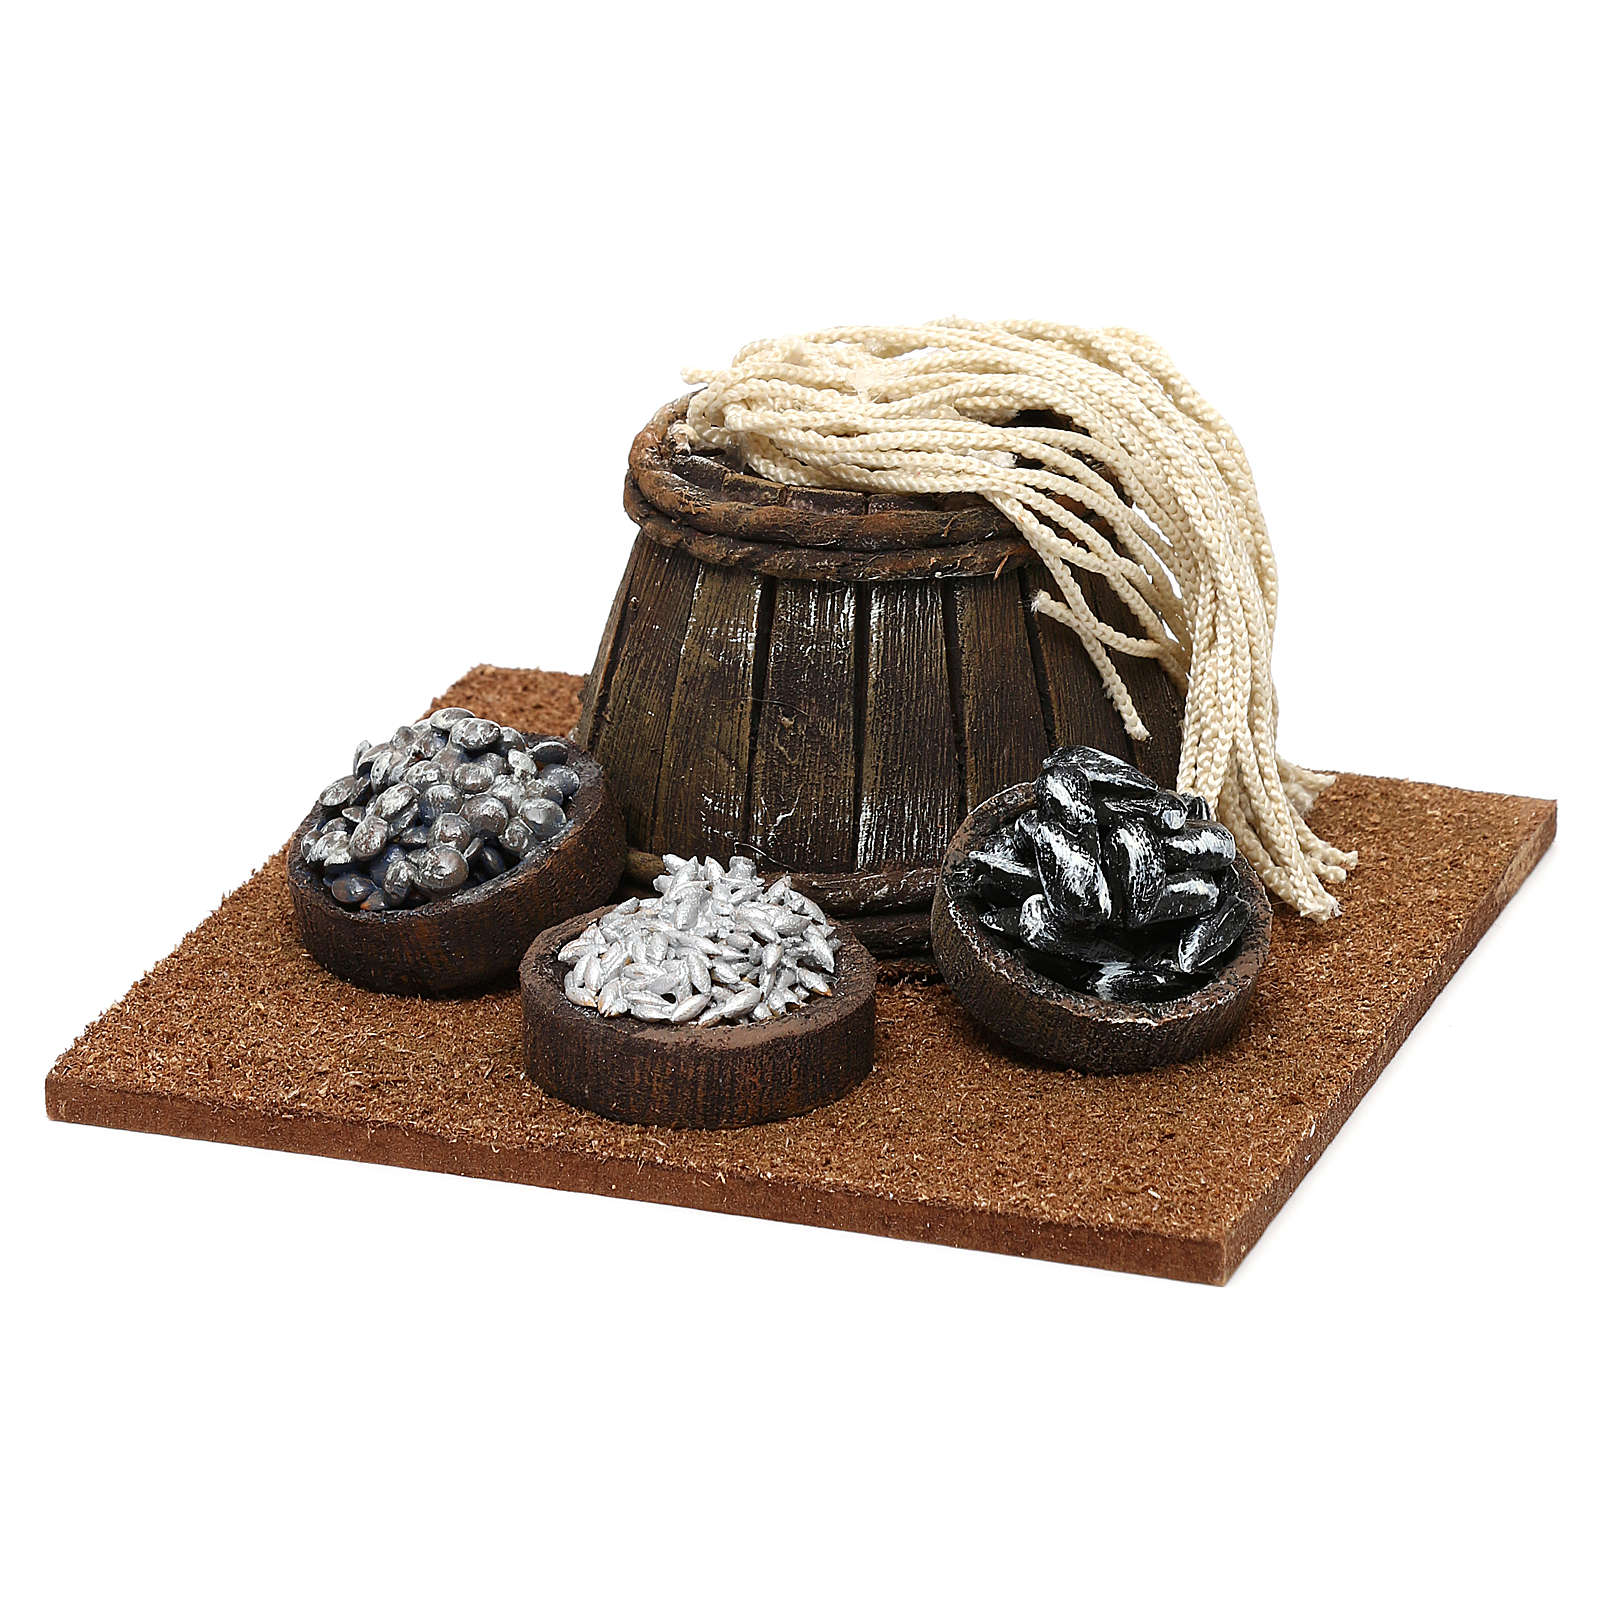 Fishmonger setting with barrel for 10 cm Nativity scene, 10x5x10 cm 4